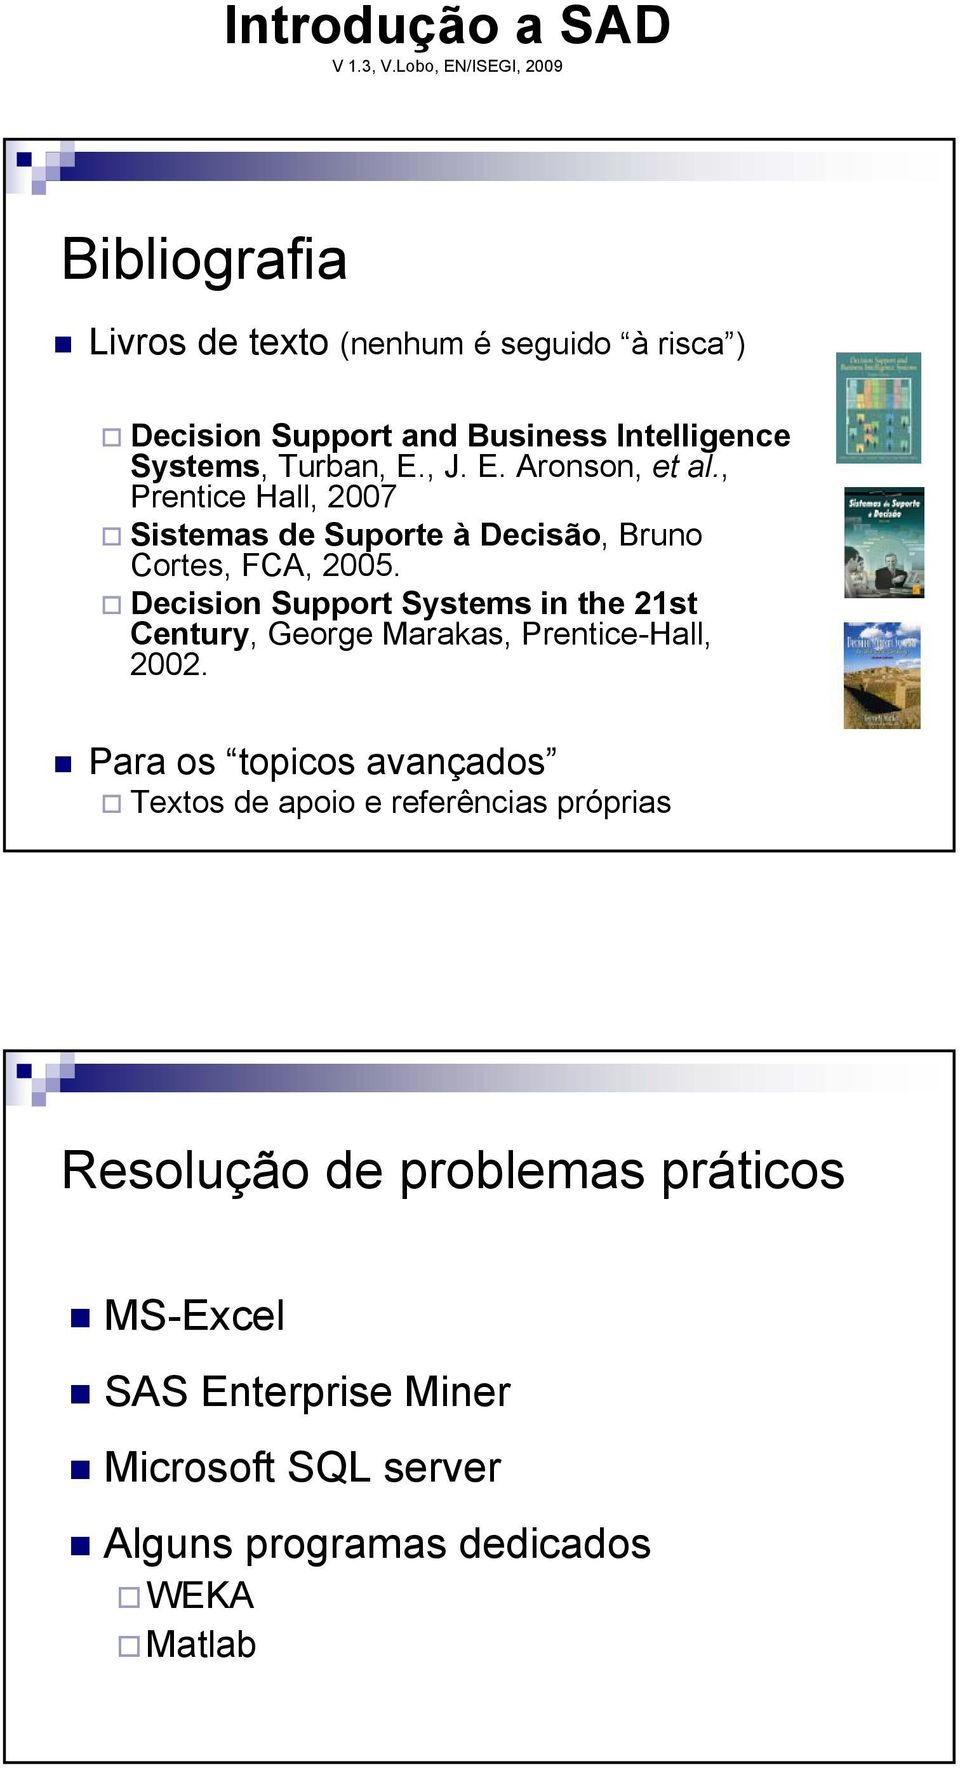 Decision Support Systems in the 21st Century, George Marakas, Prentice-Hall, 2002.